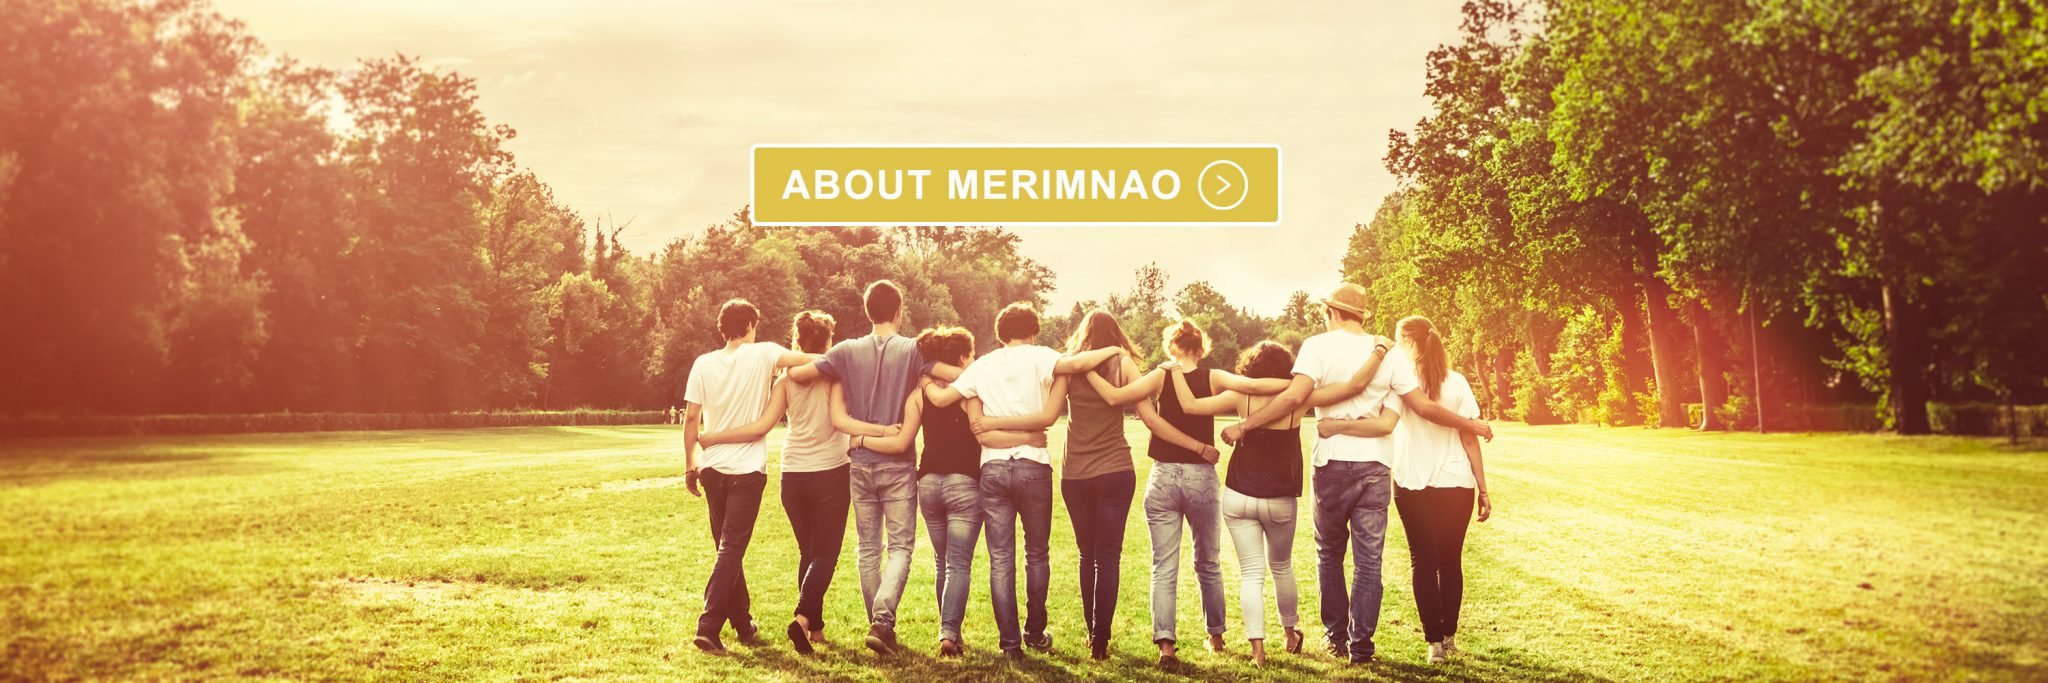 About Merimnao